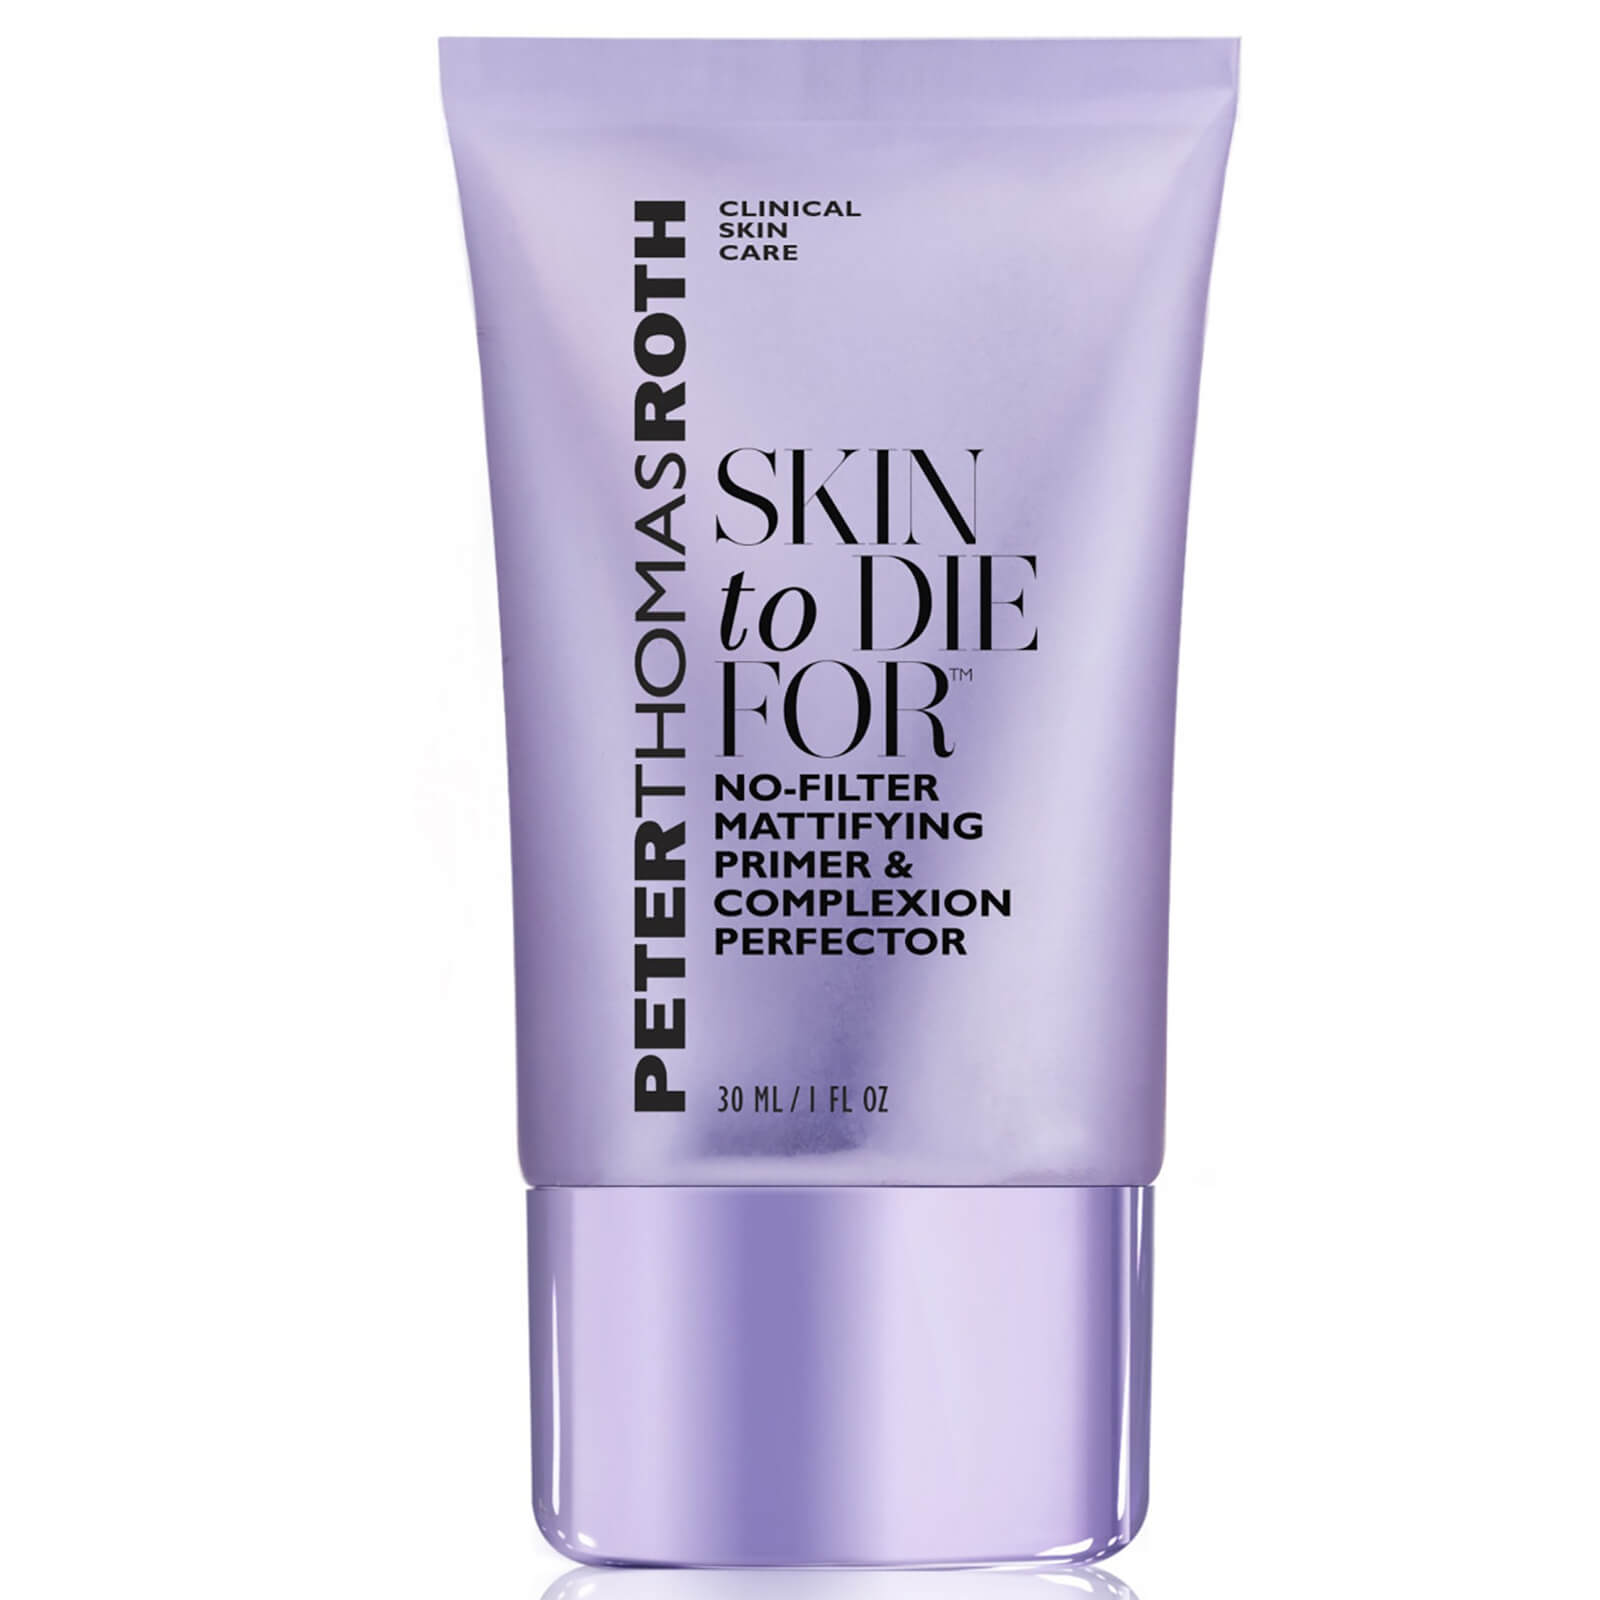 Peter Thomas Roth Skin to Die For No-Filter Mattifying Primer and Complexion Perfector 30ml